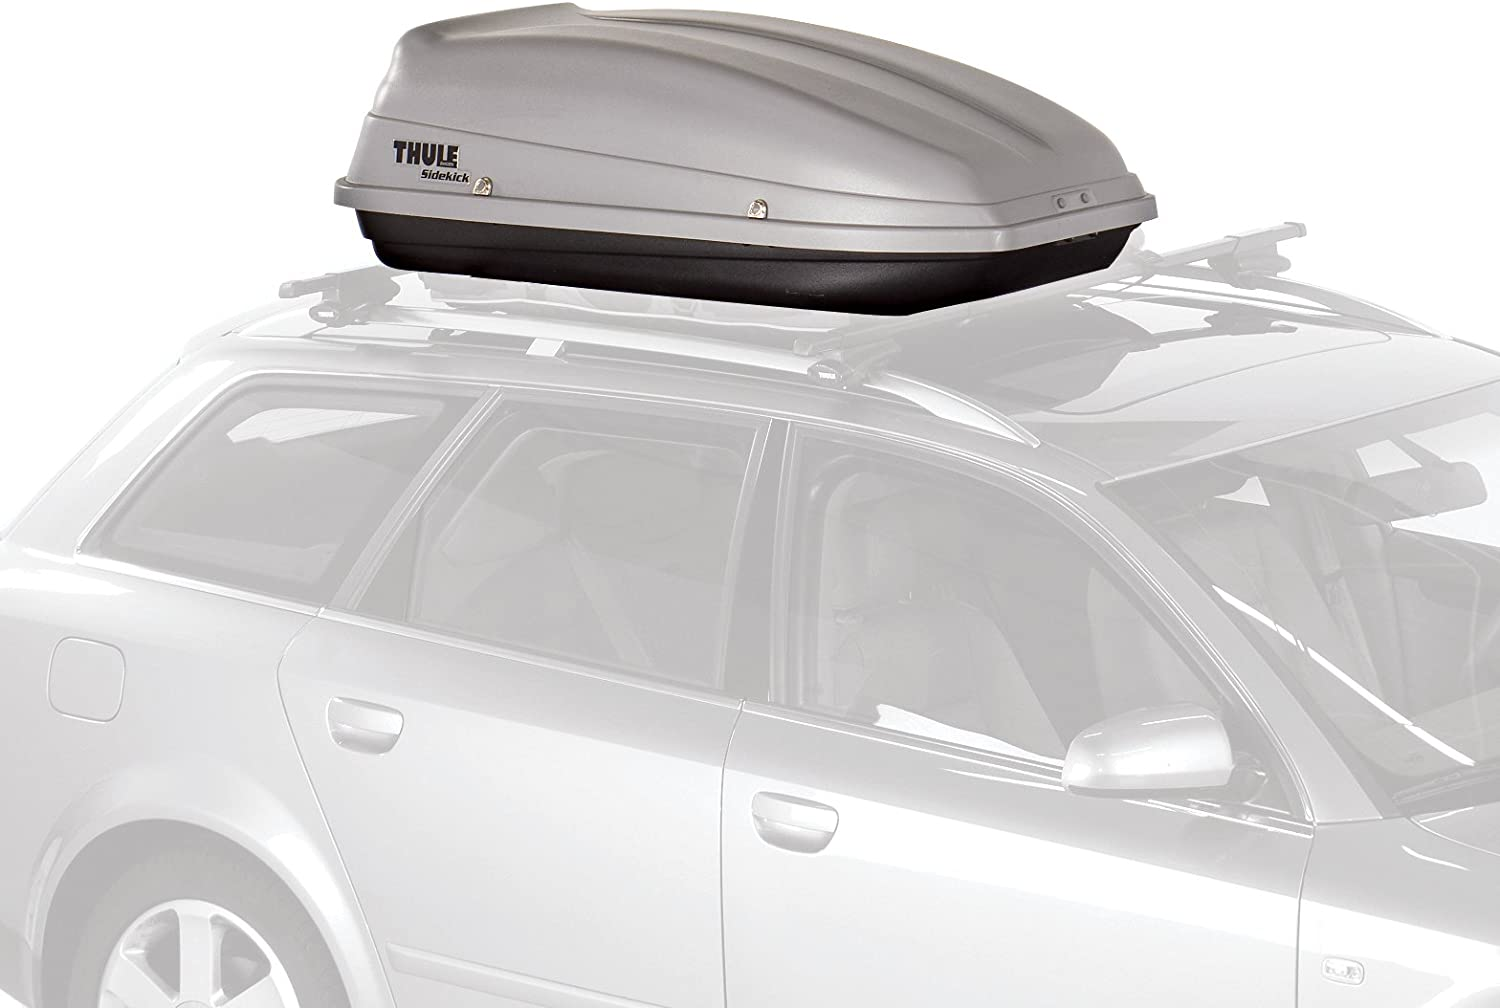 UP To 30% Off on Thule 682 Sidekick Rooftop Cargo Box,Grey, One Size